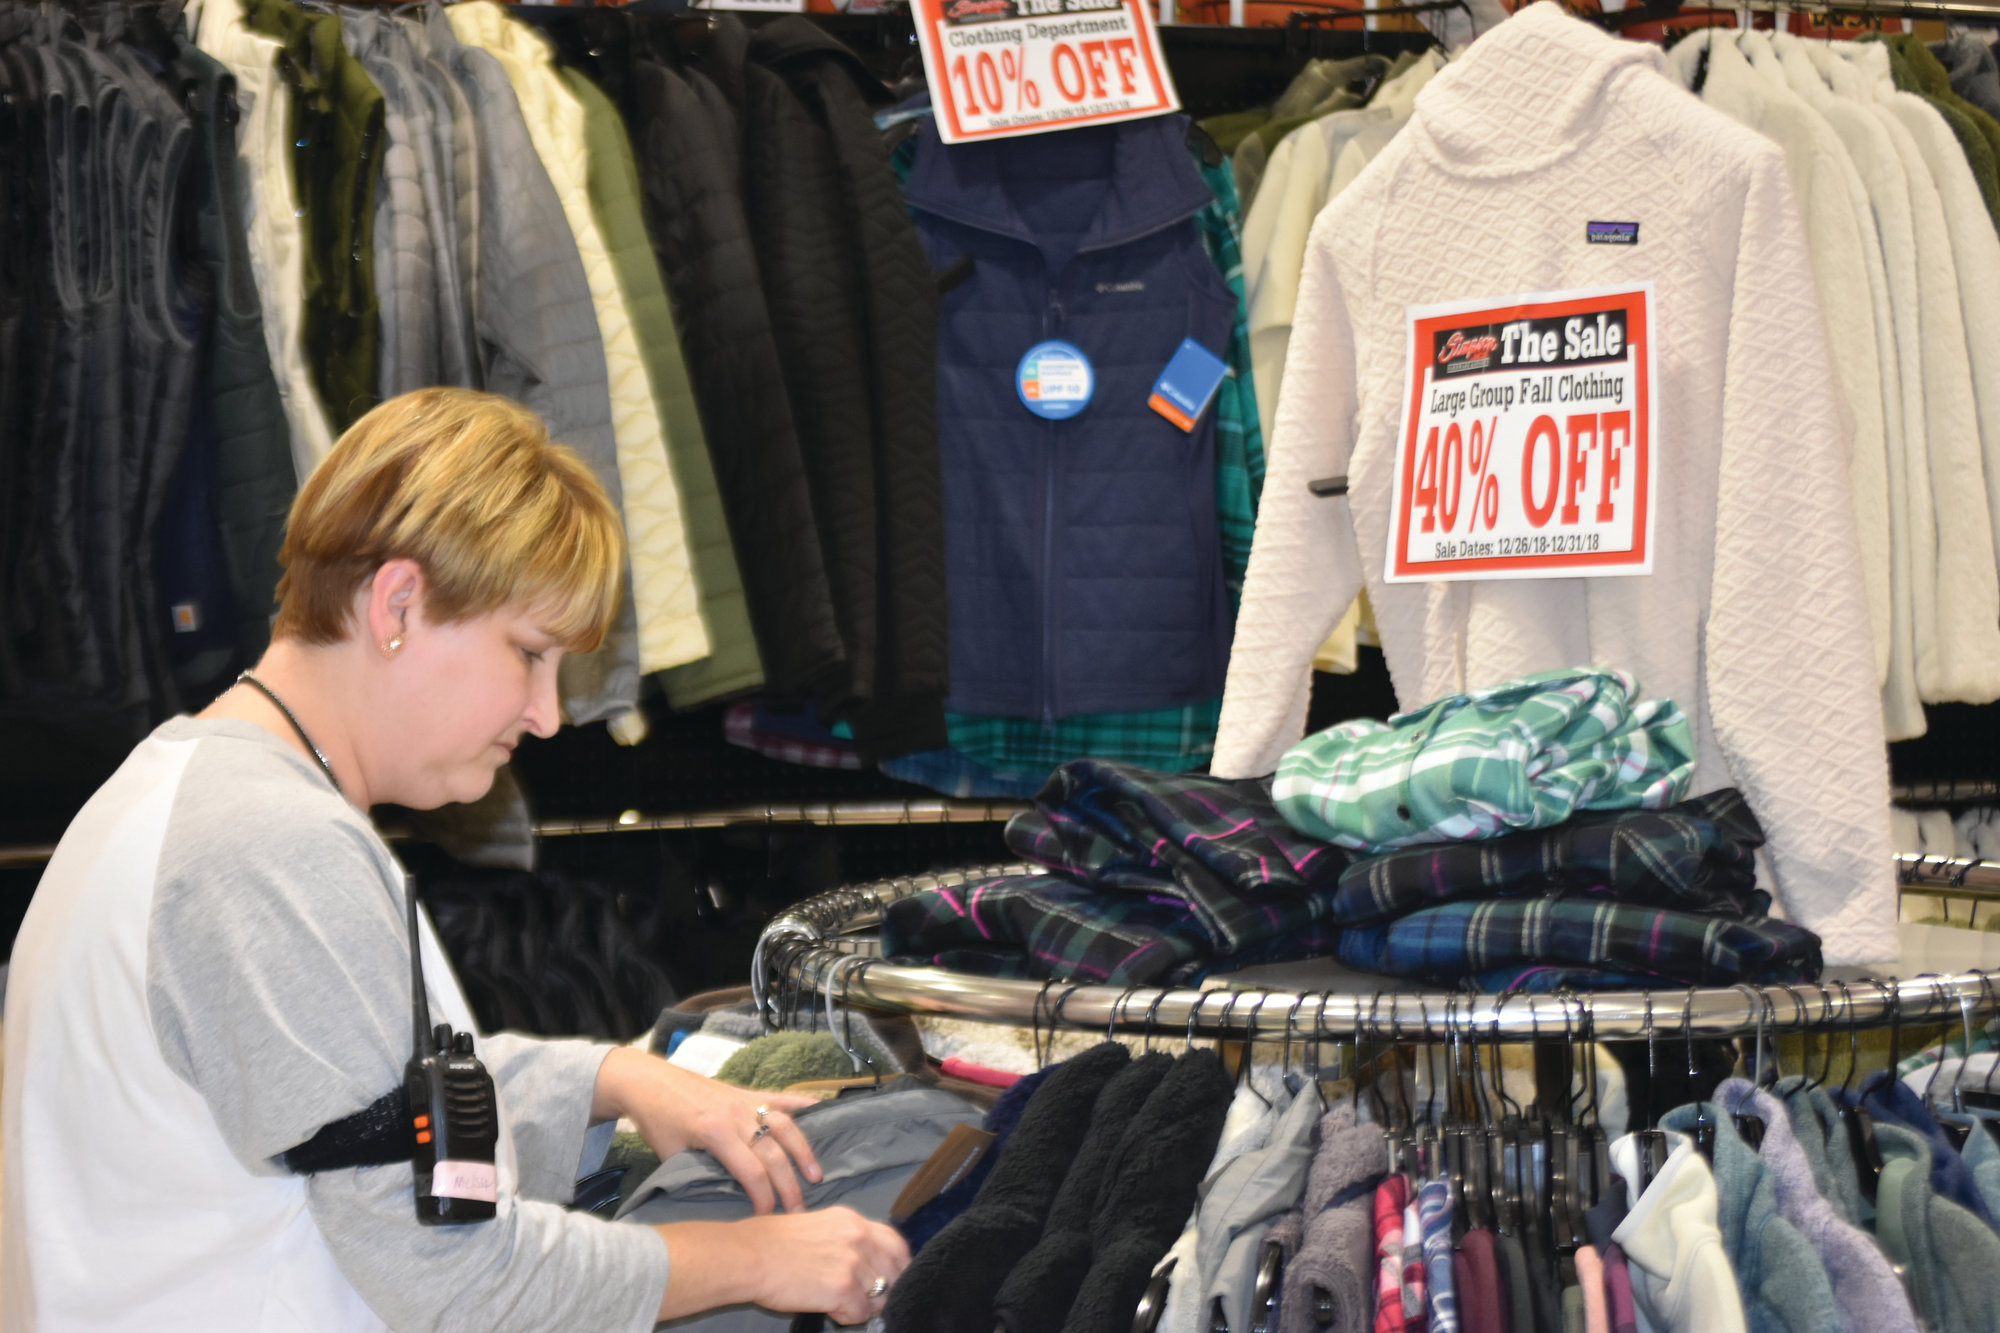 BRUCE MILLS / THE SUMTER ITEM